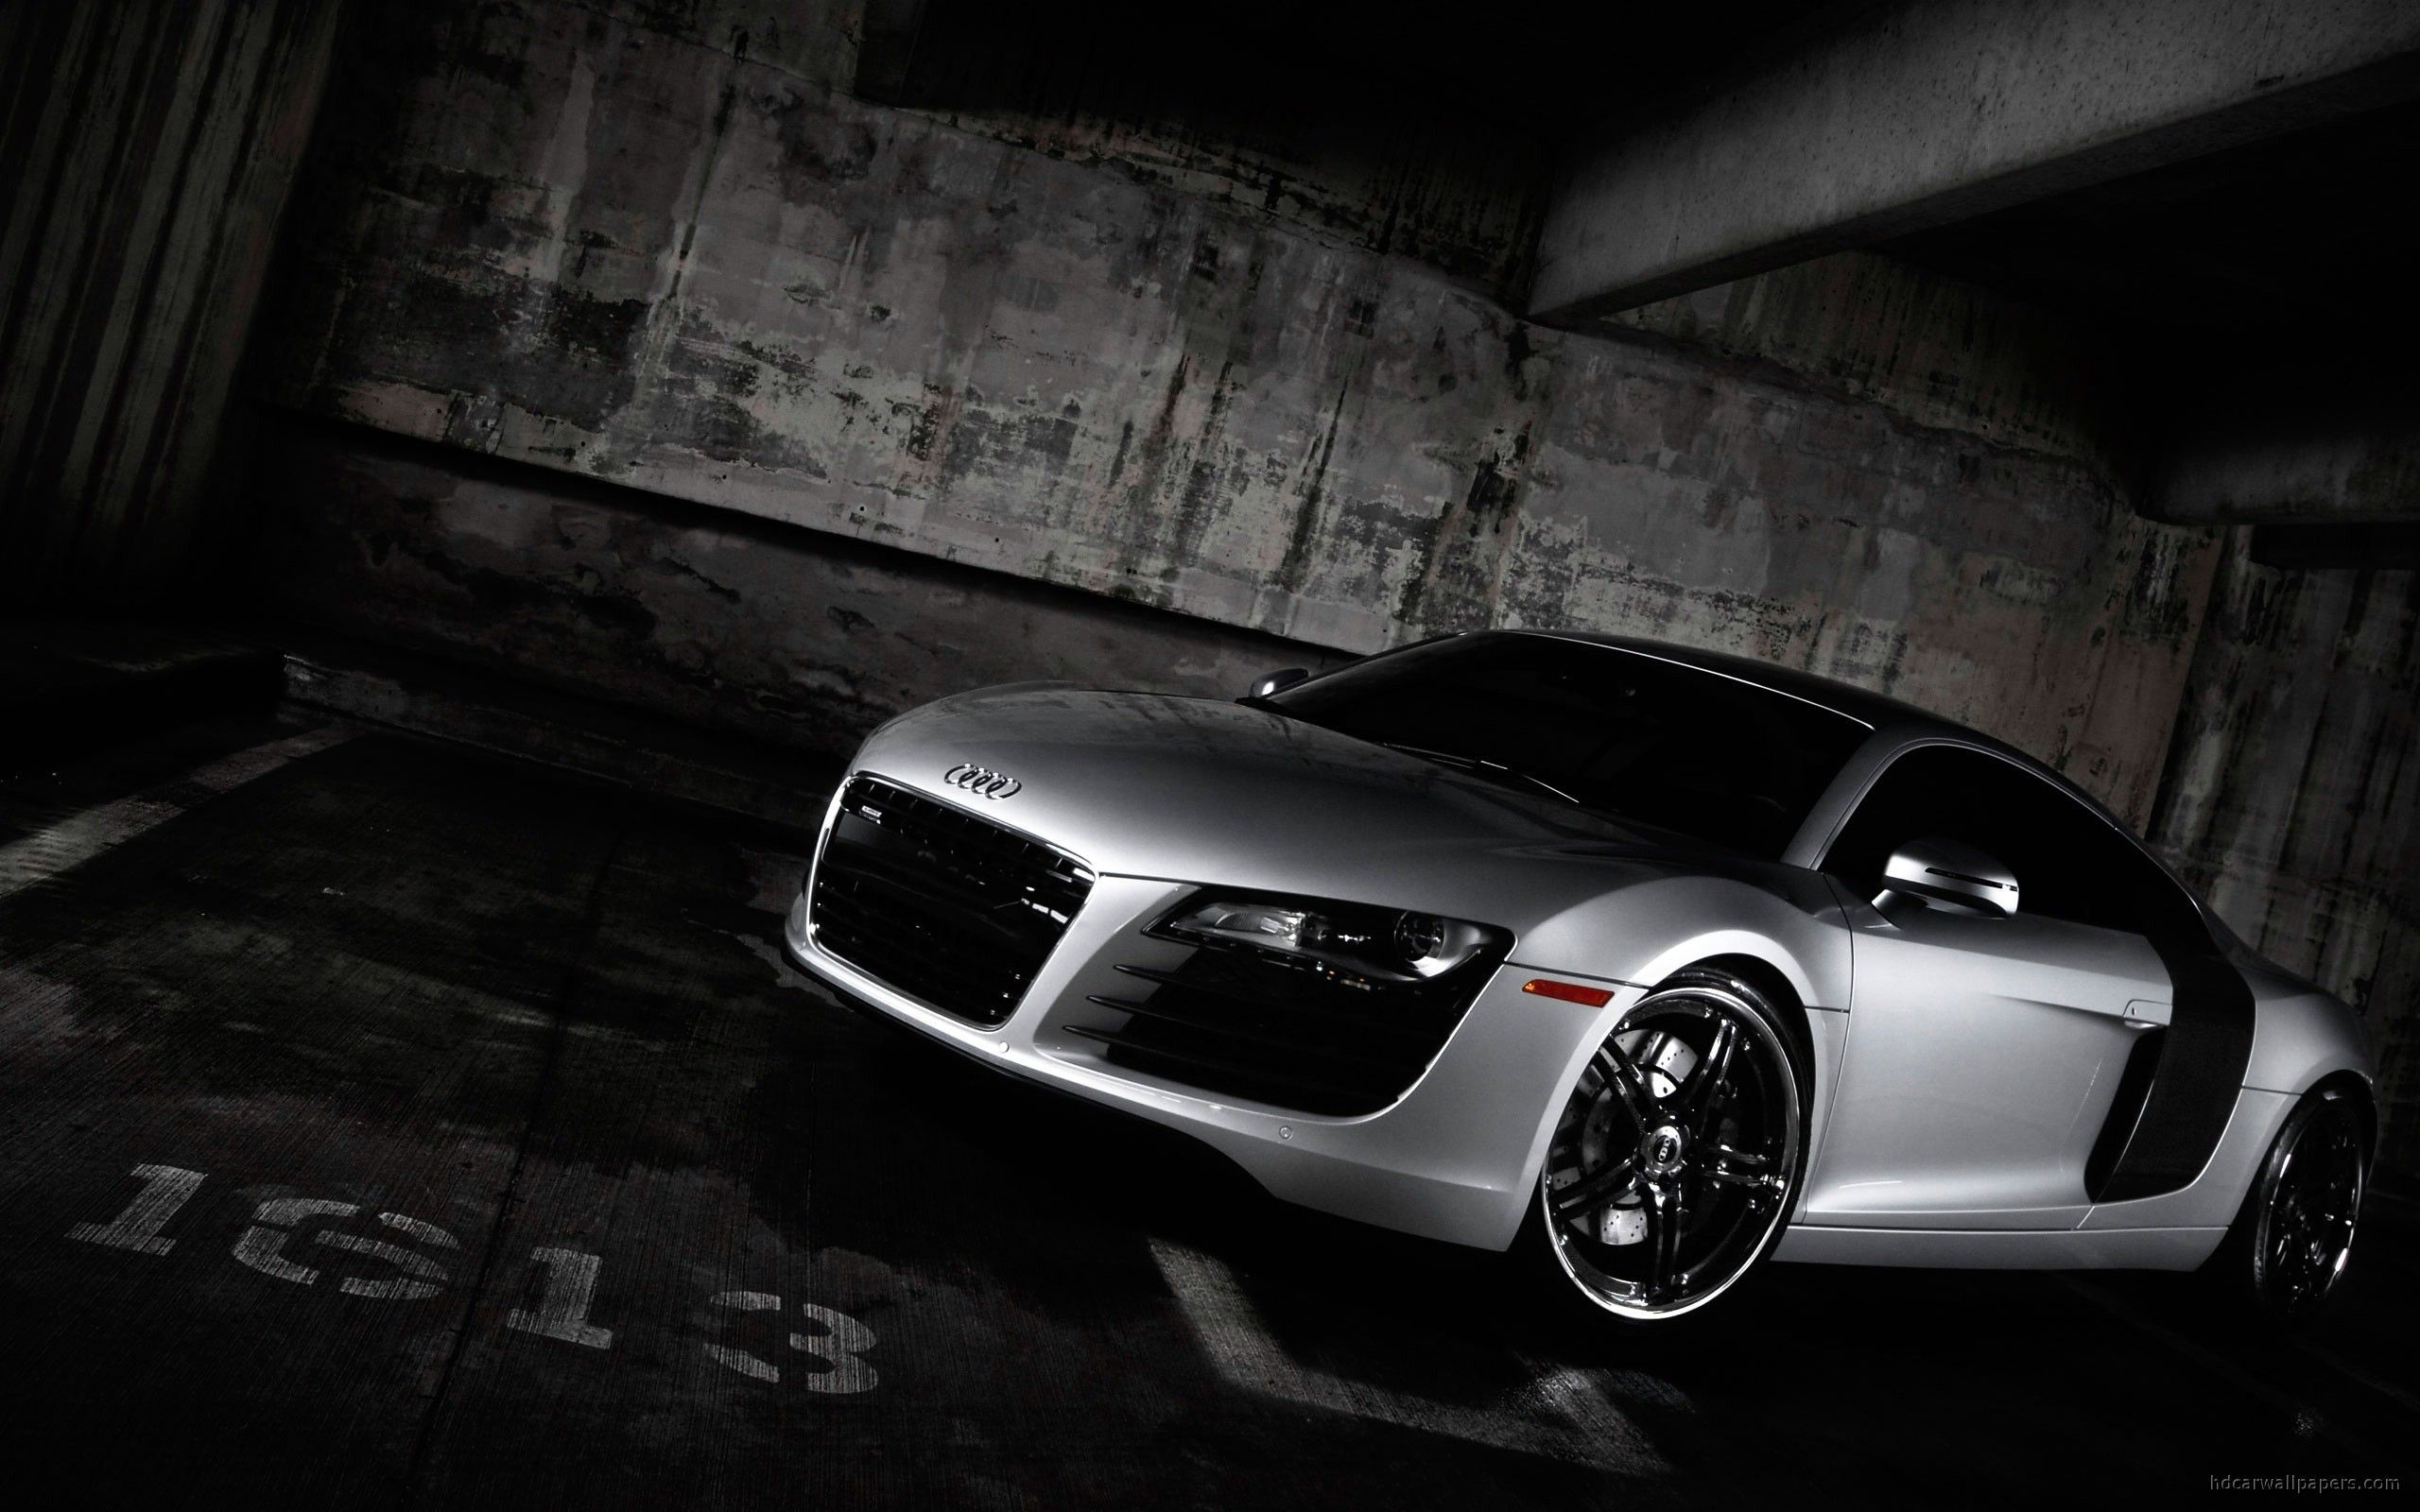 Res: 2560x1600, Download Audi Car Hd Wallpapers 1080p High Resolution Backgrounds R Cave Of  Pc